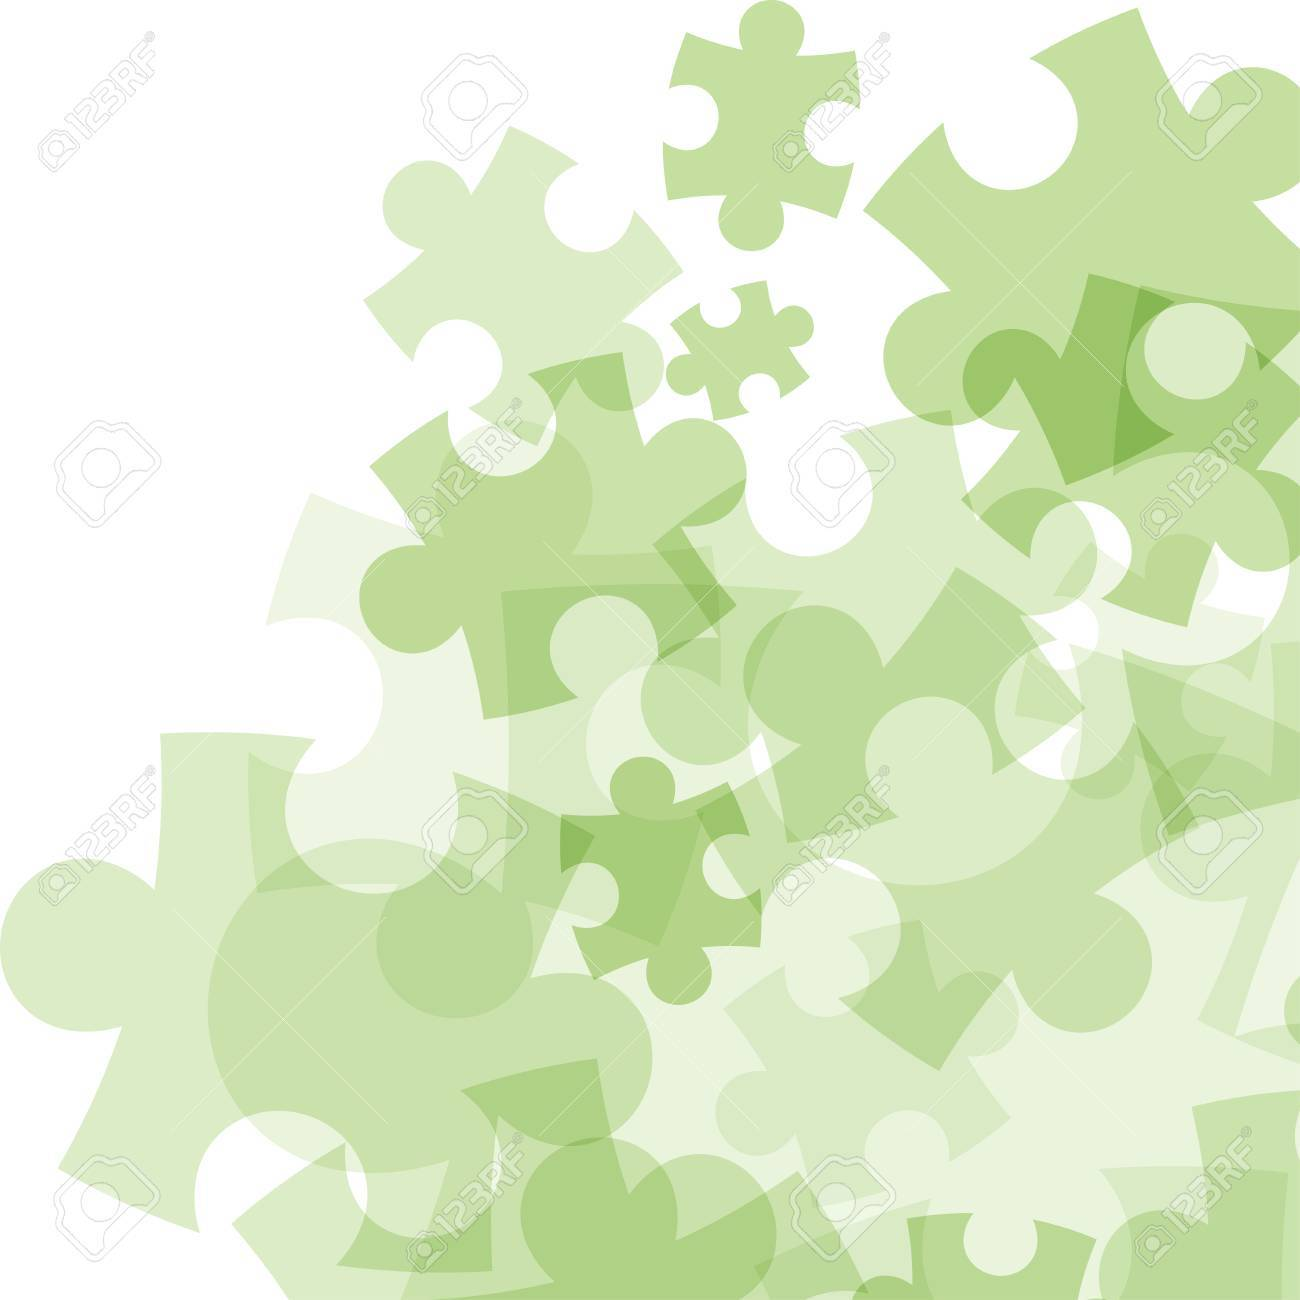 Abstract monocolor puzzle background. Vector graphic template. - 41742292